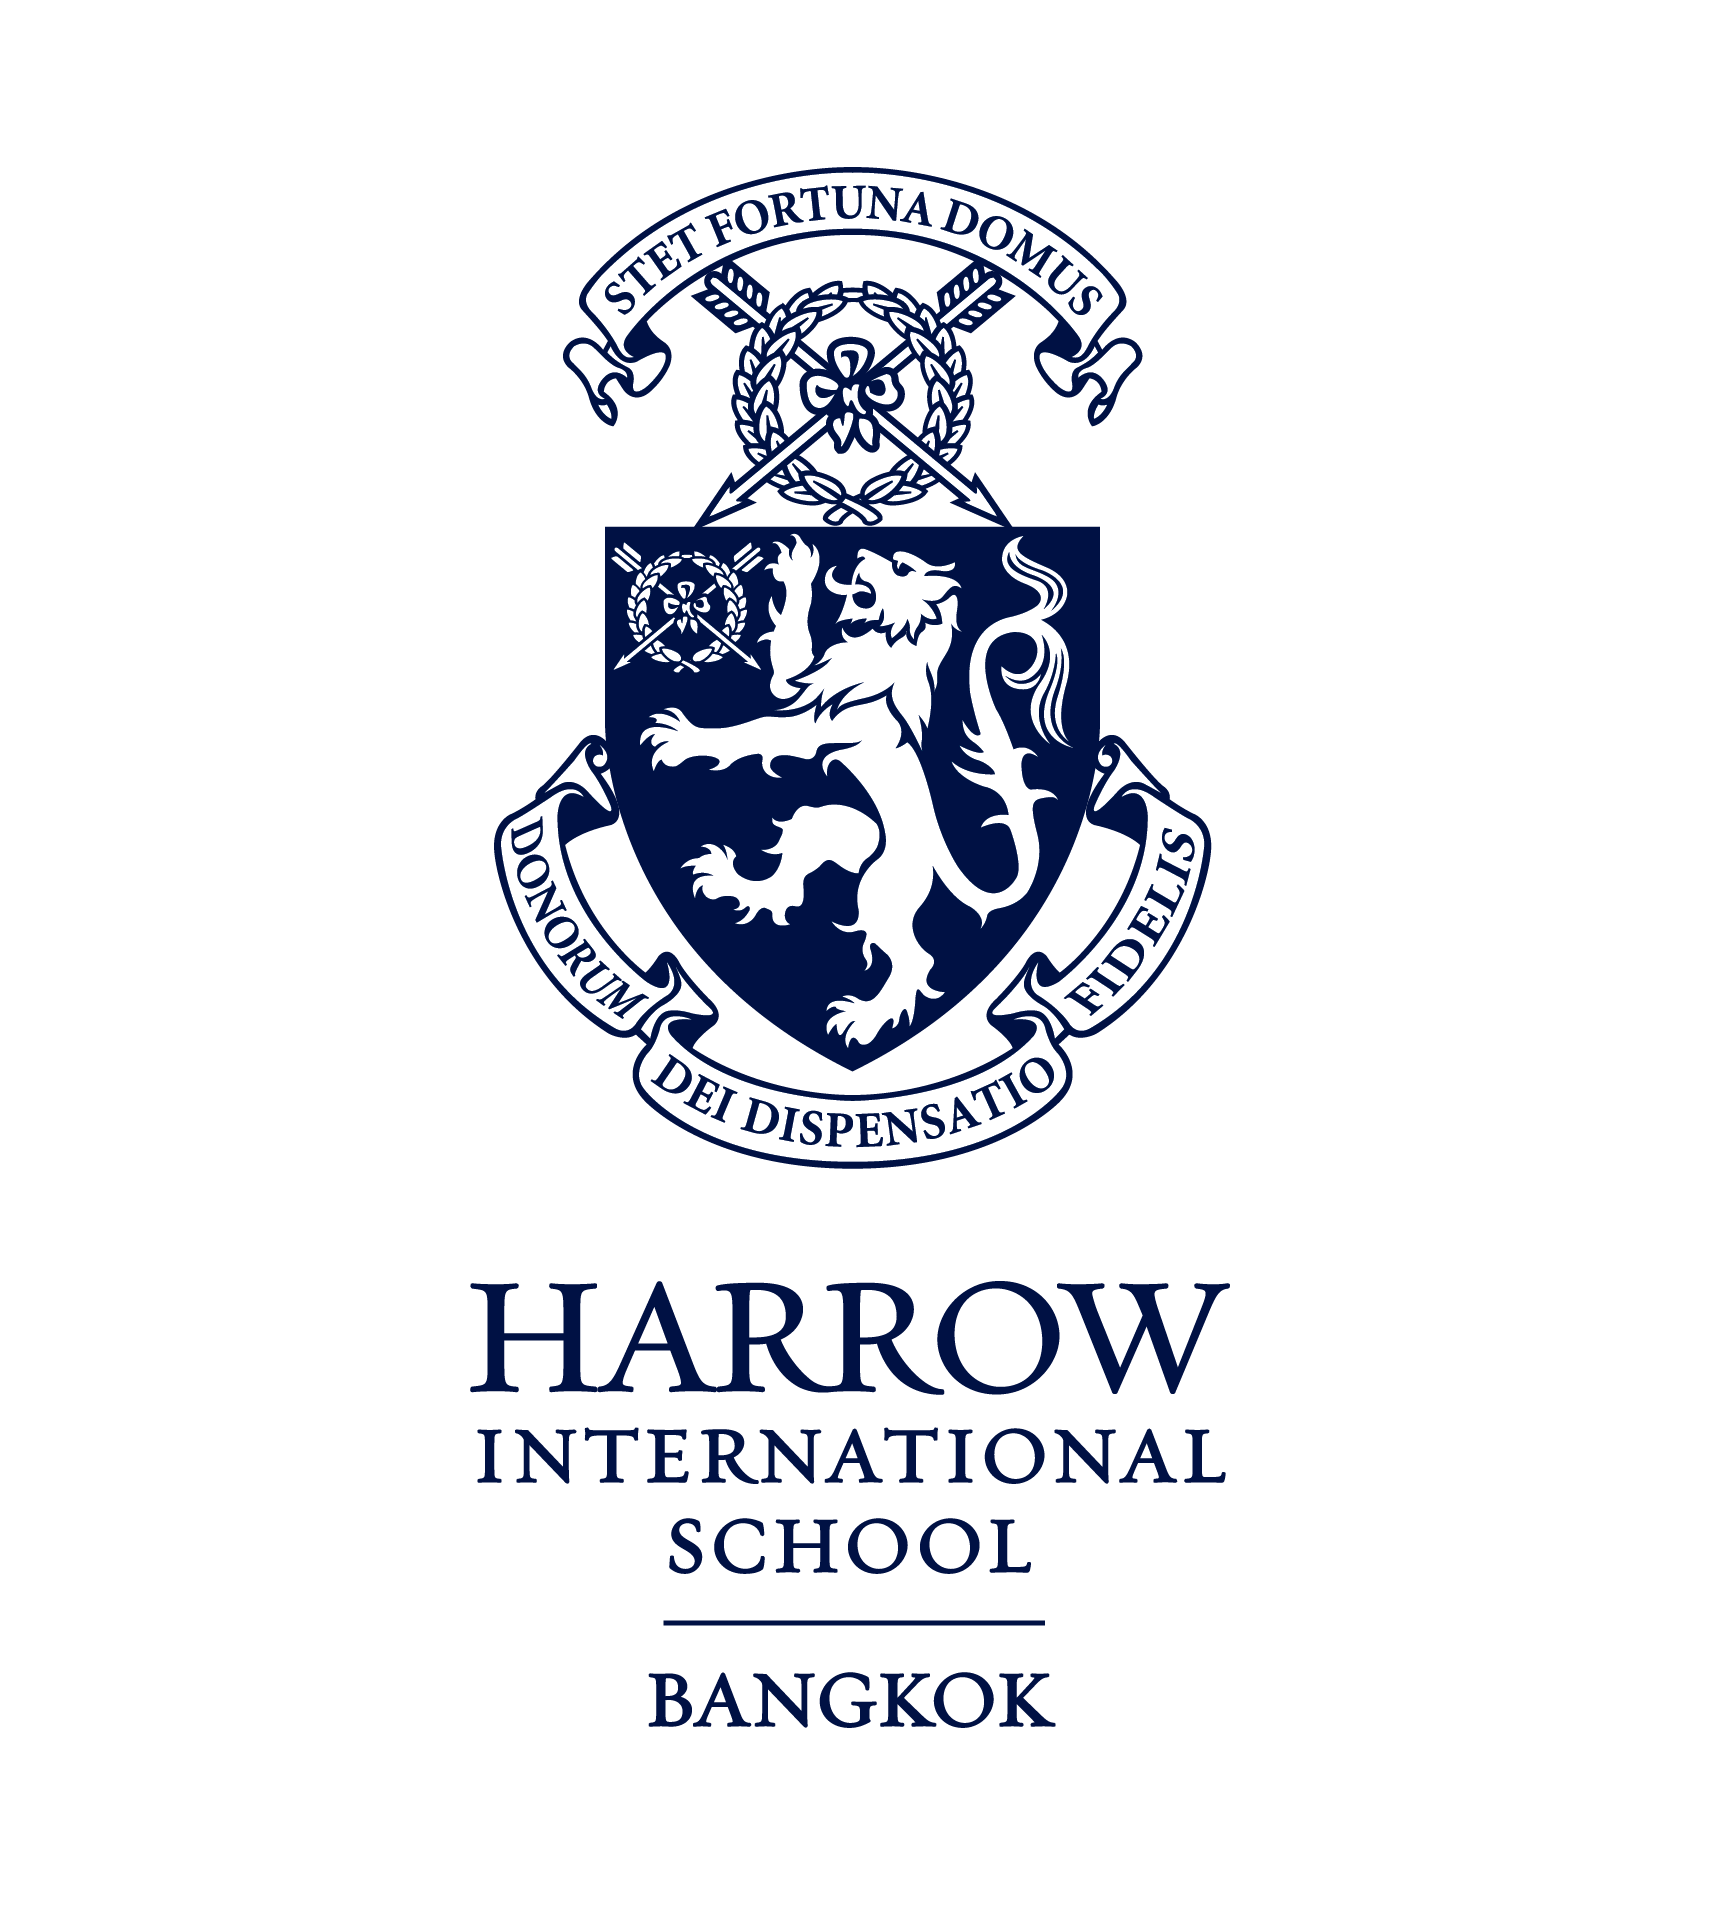 Harrow Internation School